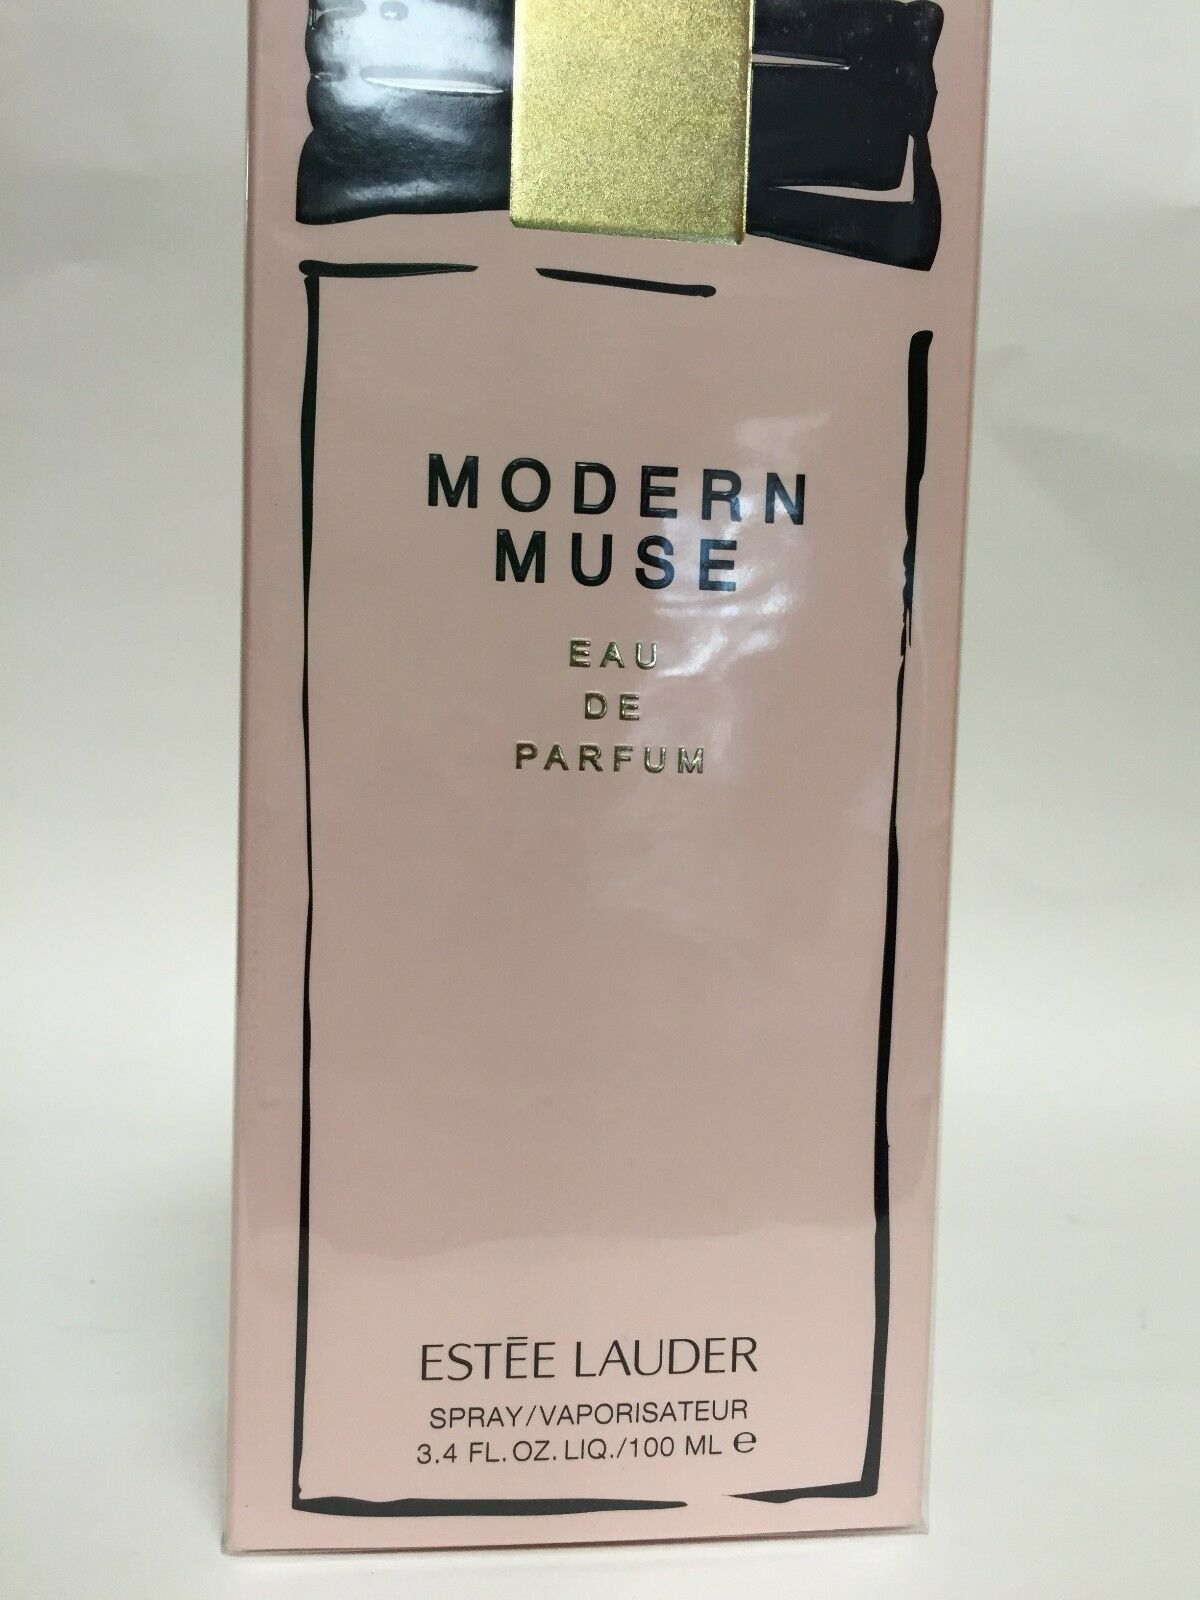 Modern Muse By Estee Lauder Perfume For Women 34 Oz 100 Ml Edp Chic 100ml Spray New In 1 Of 4free Shipping